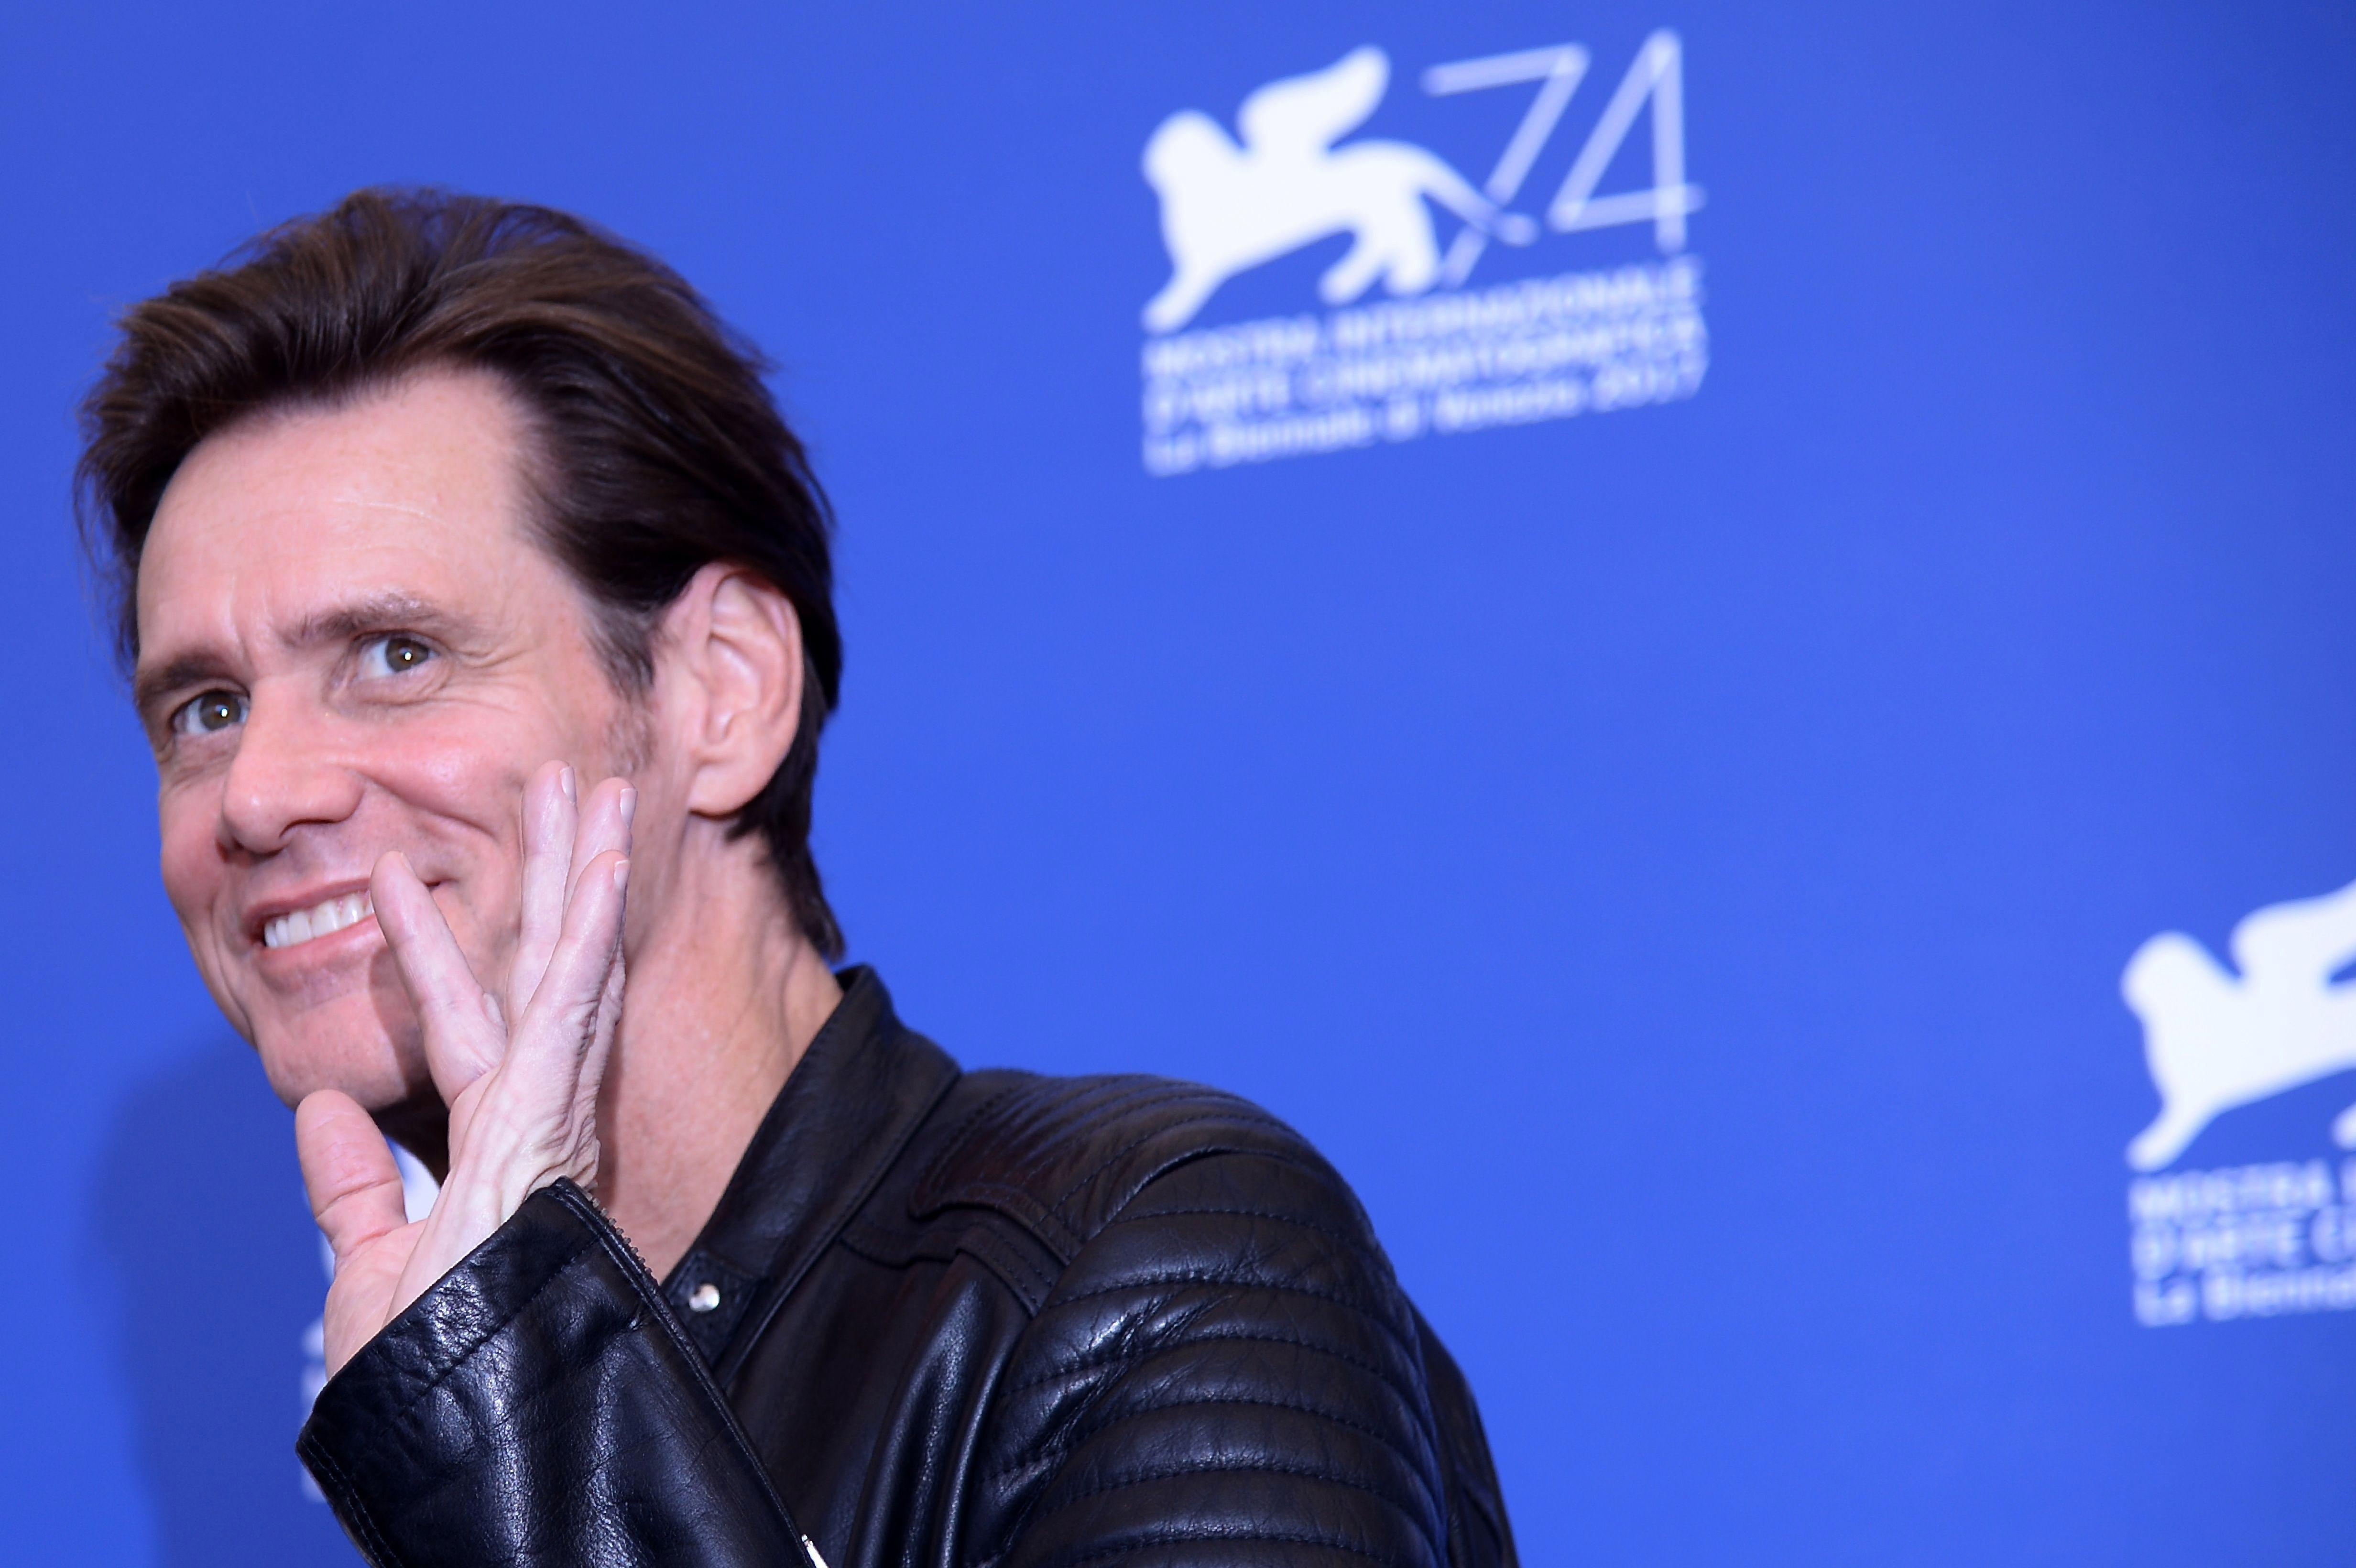 Film star Jim Carrey urges Facebook users to dump their accounts like him